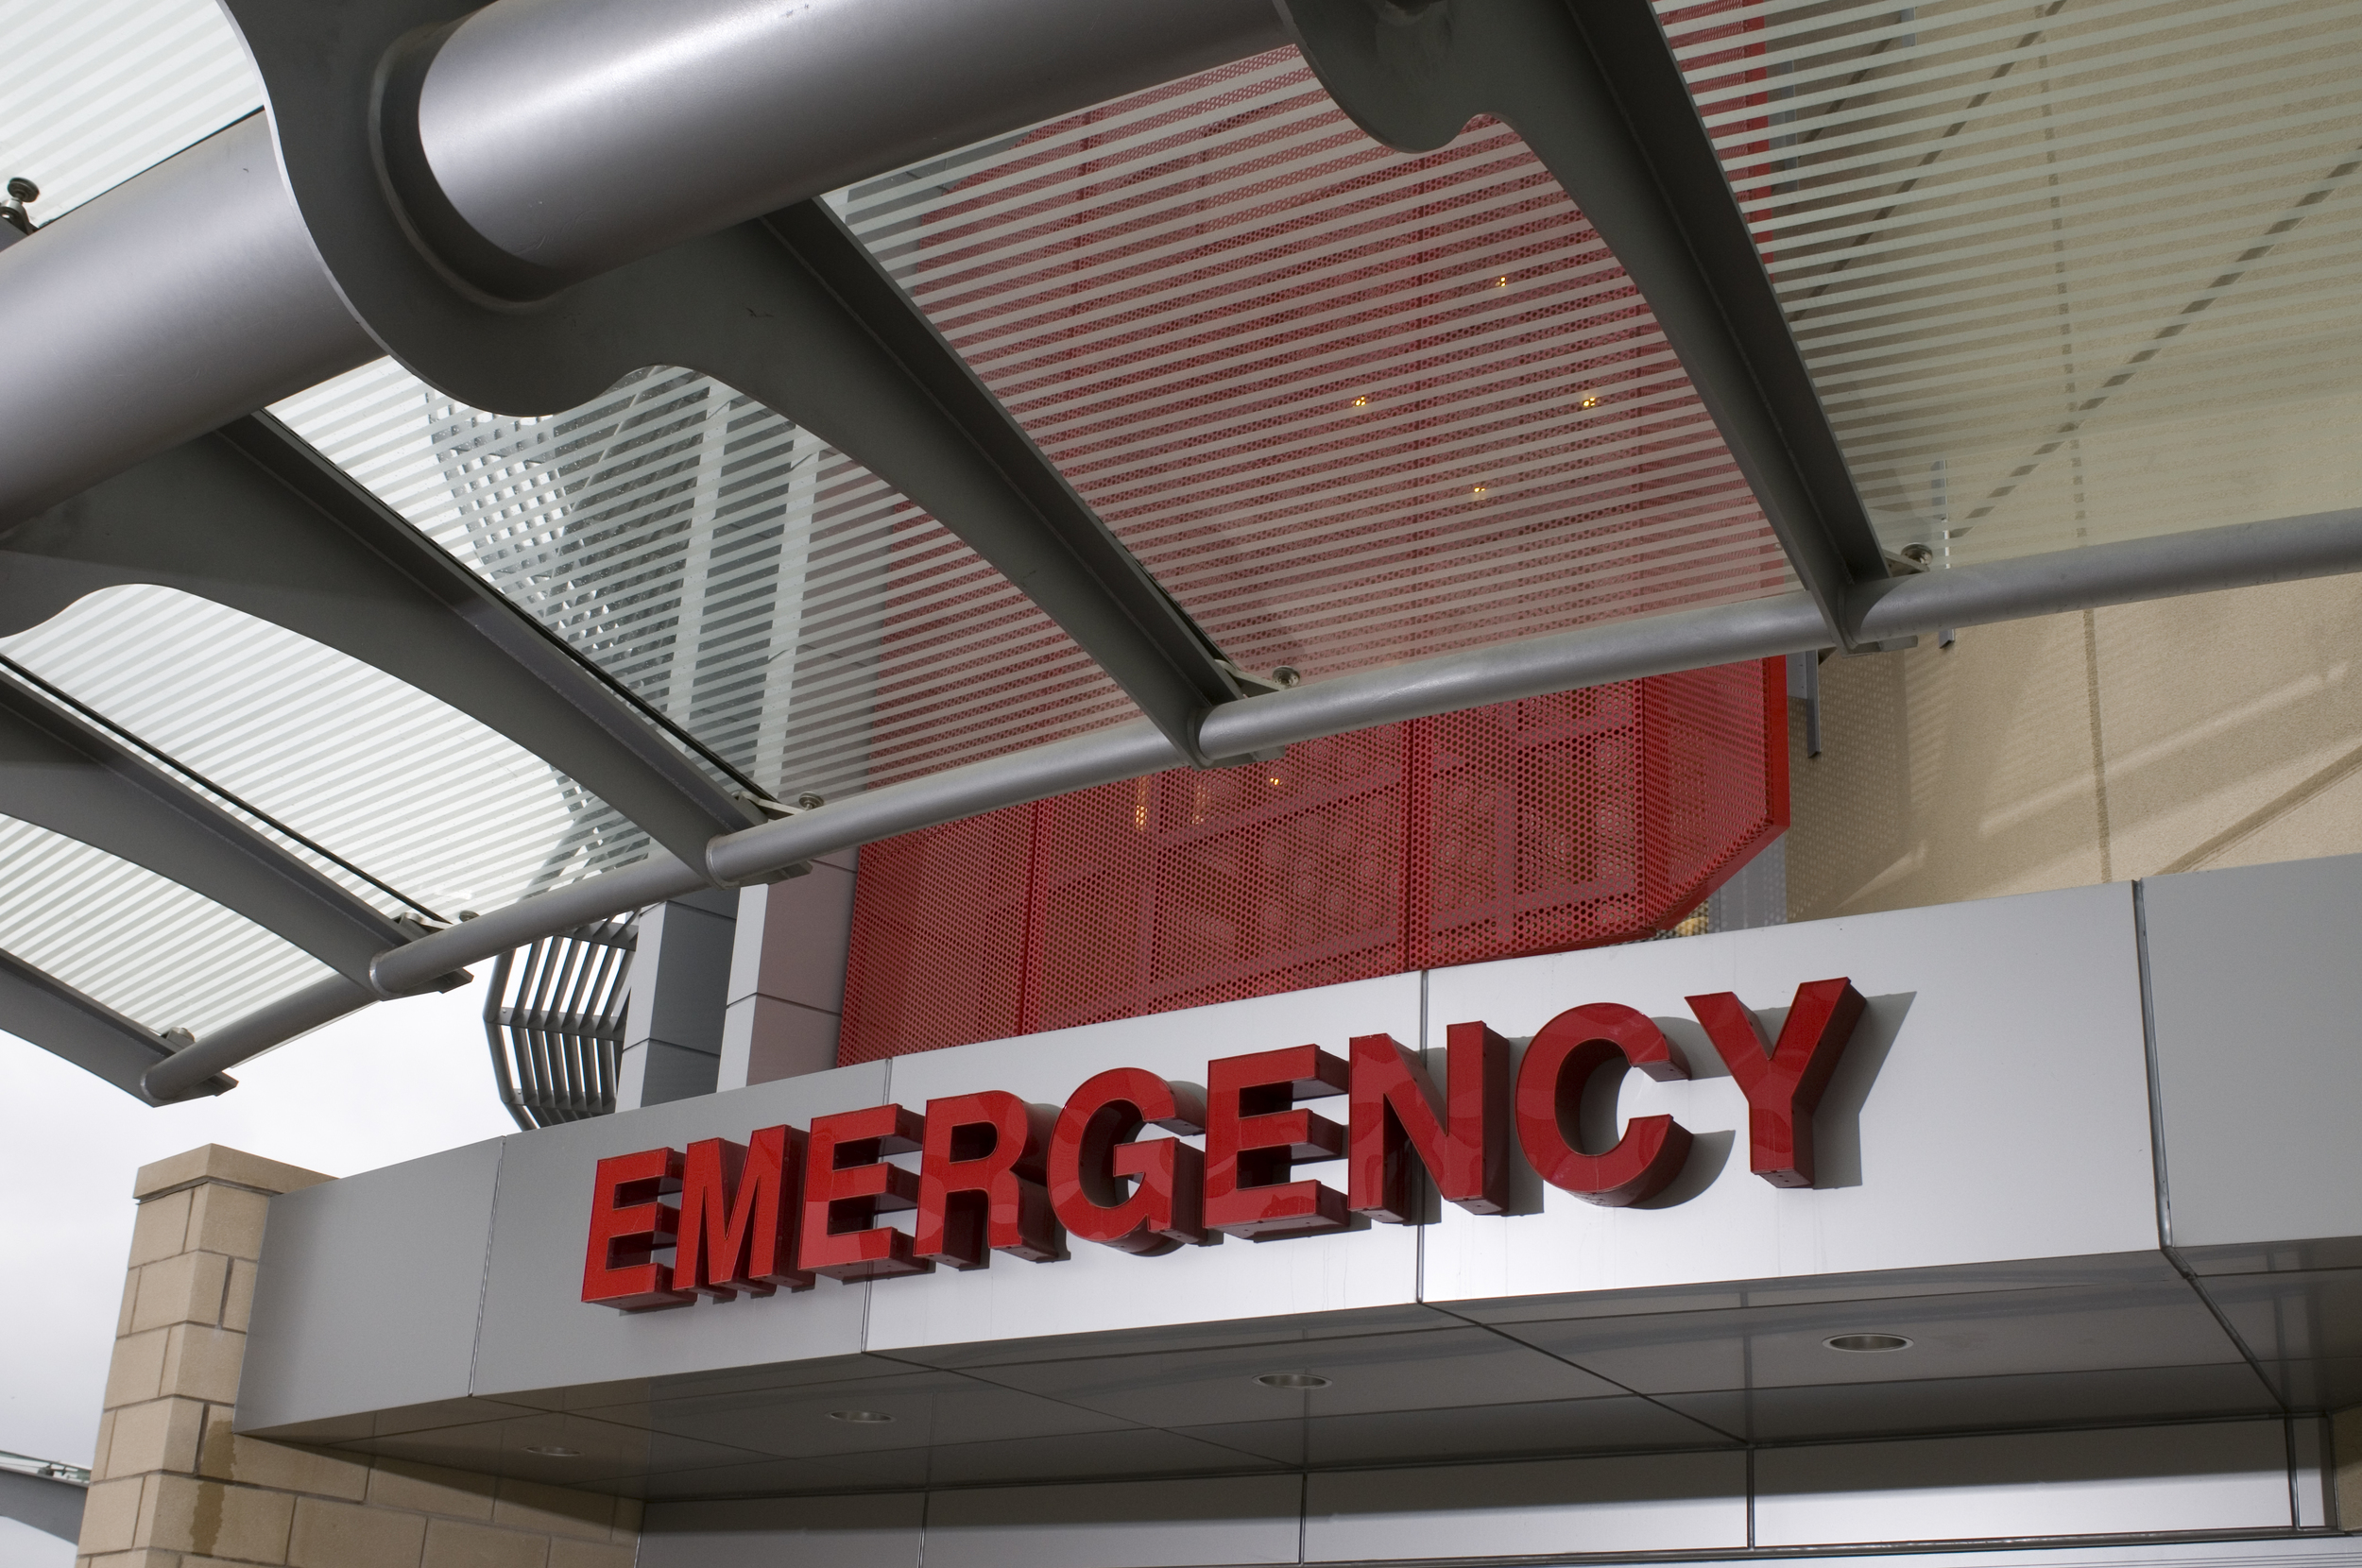 emerg entrance tight.jpg